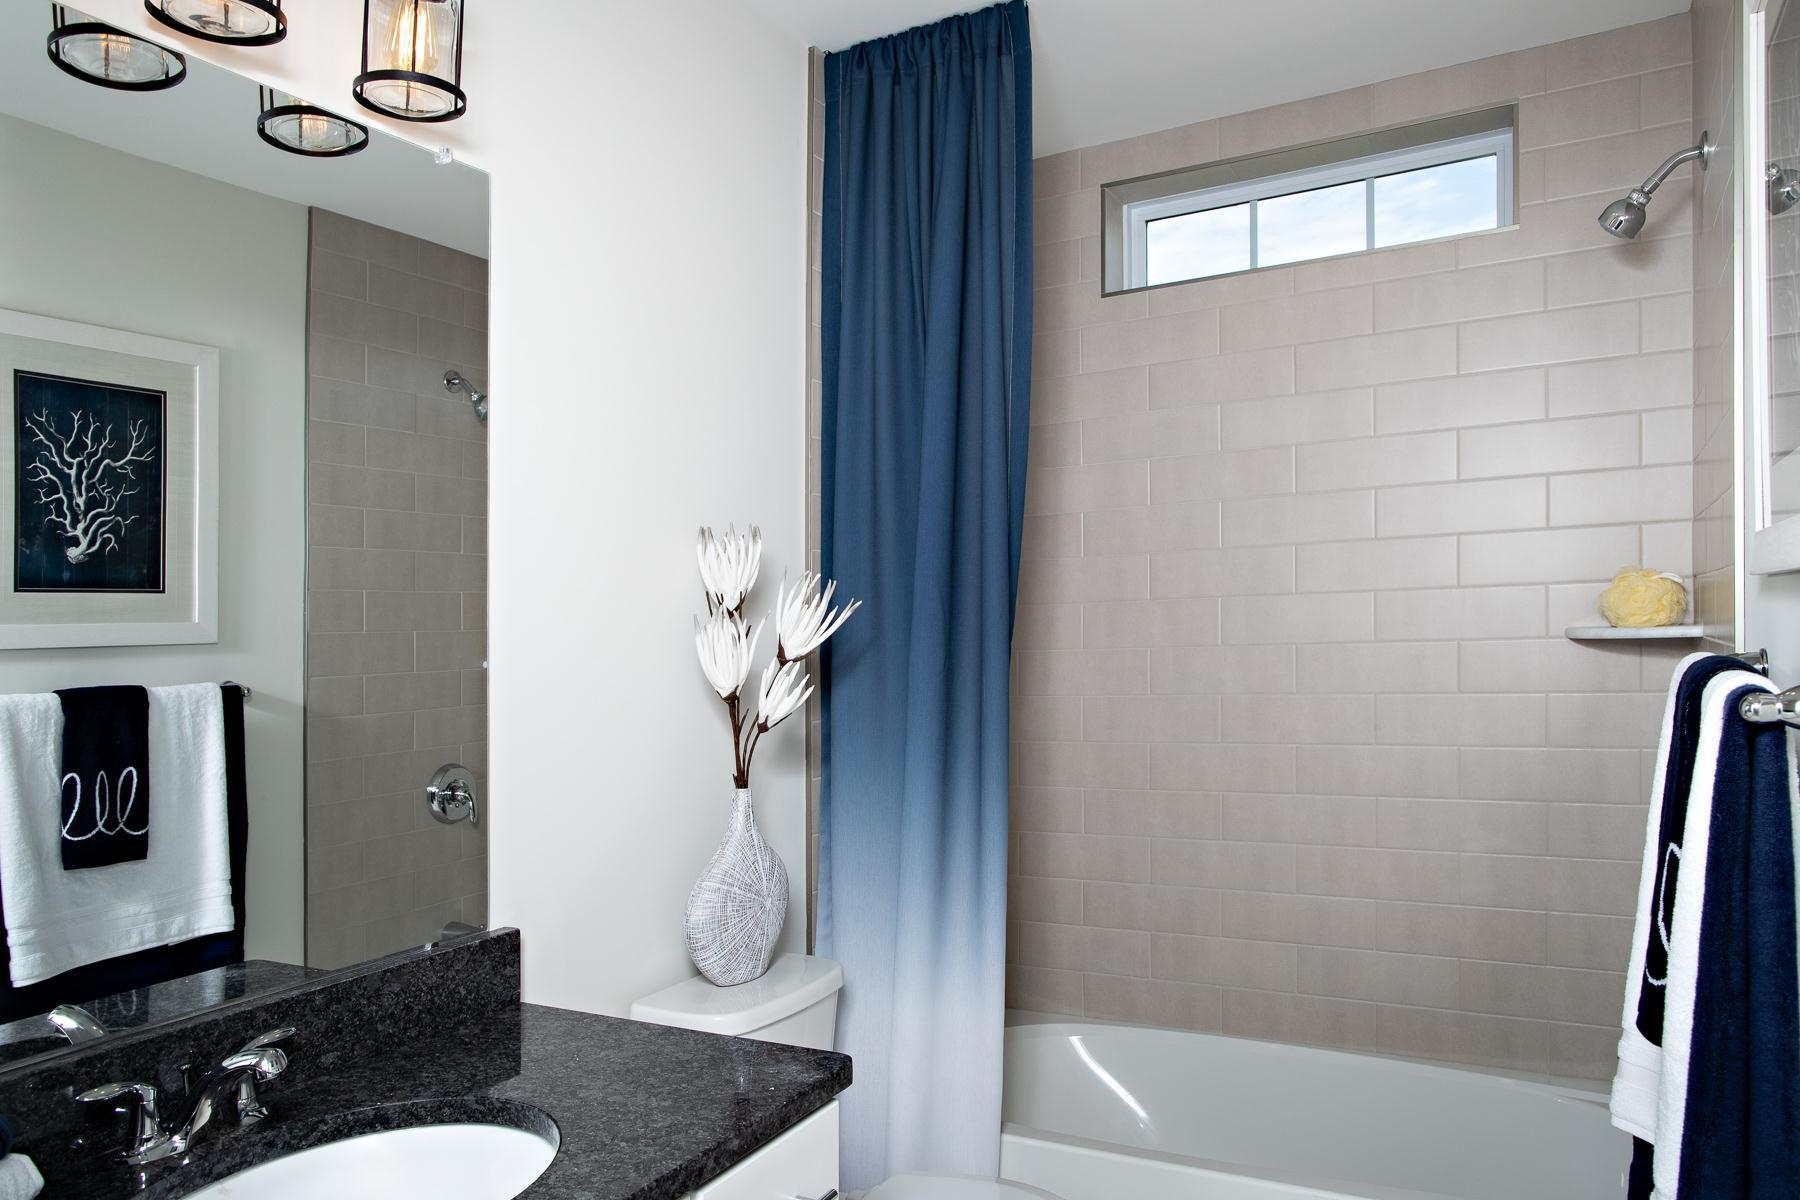 Bathroom featured in the Clark-The Glens By Sleight Farm at LaGrange in Dutchess County, NY